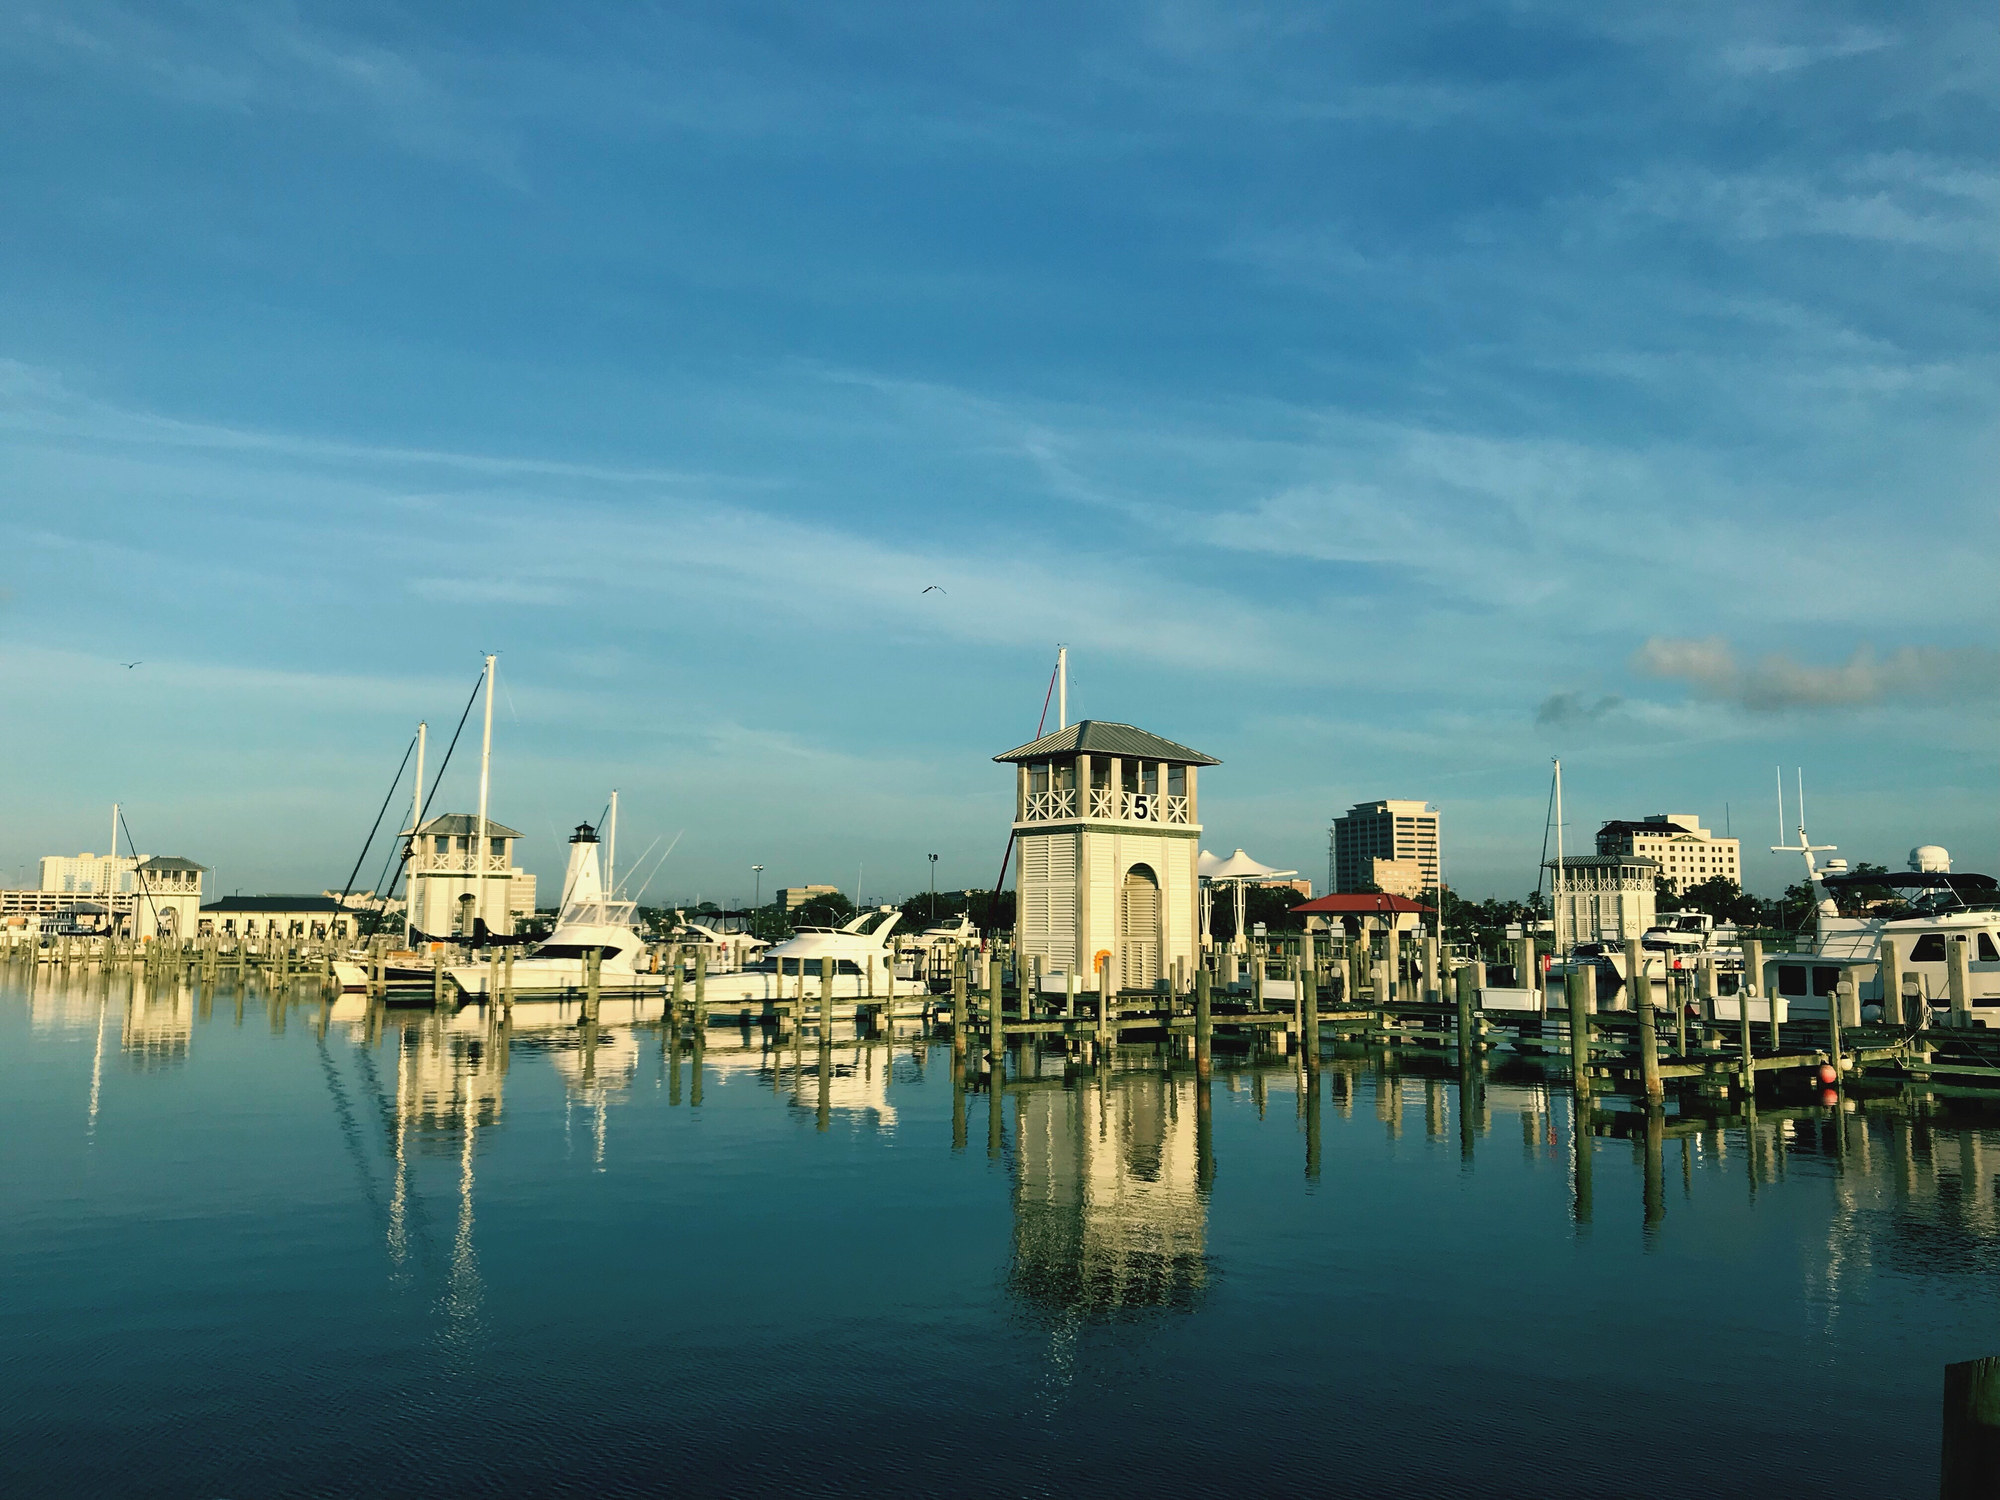 A harbor with ships in Gulfport, Mississippi.